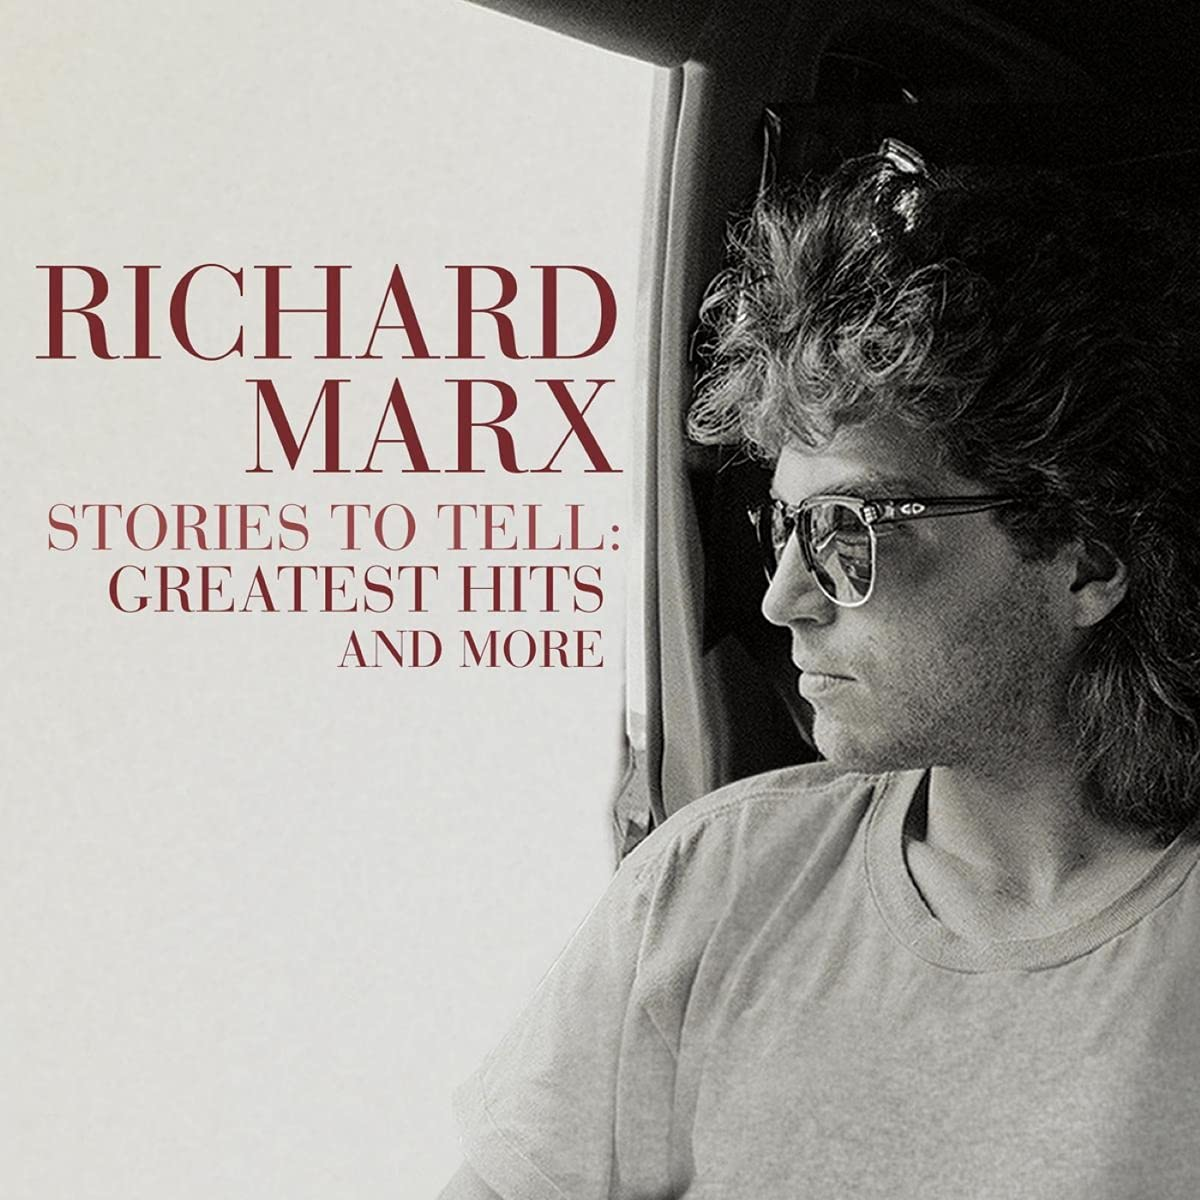 Richard Marx Stories To Tell: Greatest Hits and More Zip Mp3 Download